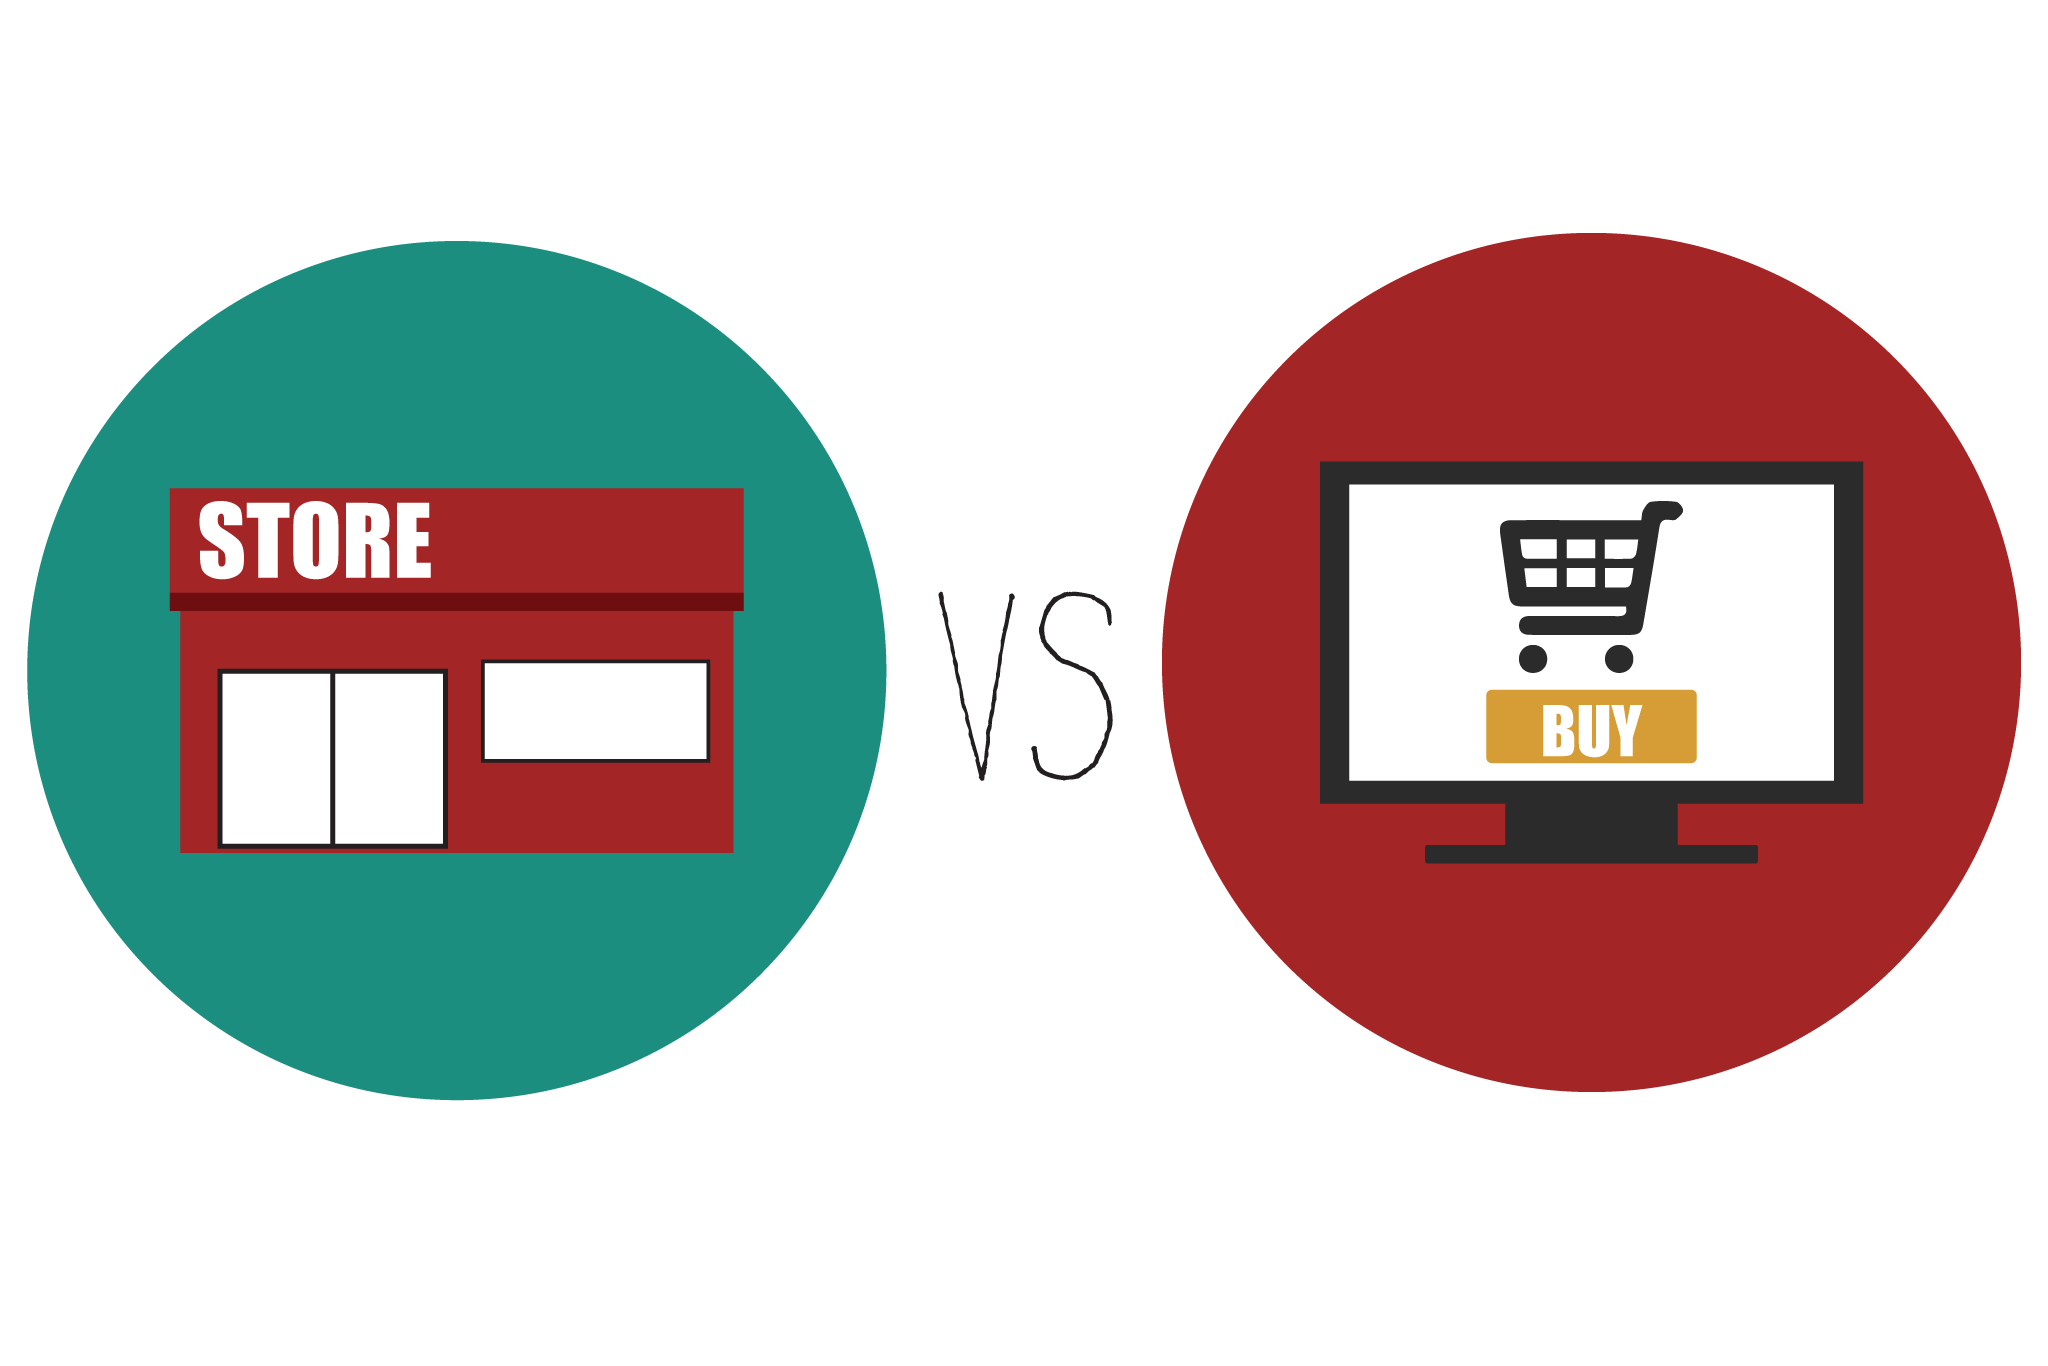 Physical vs Online: Which is right for retailers?